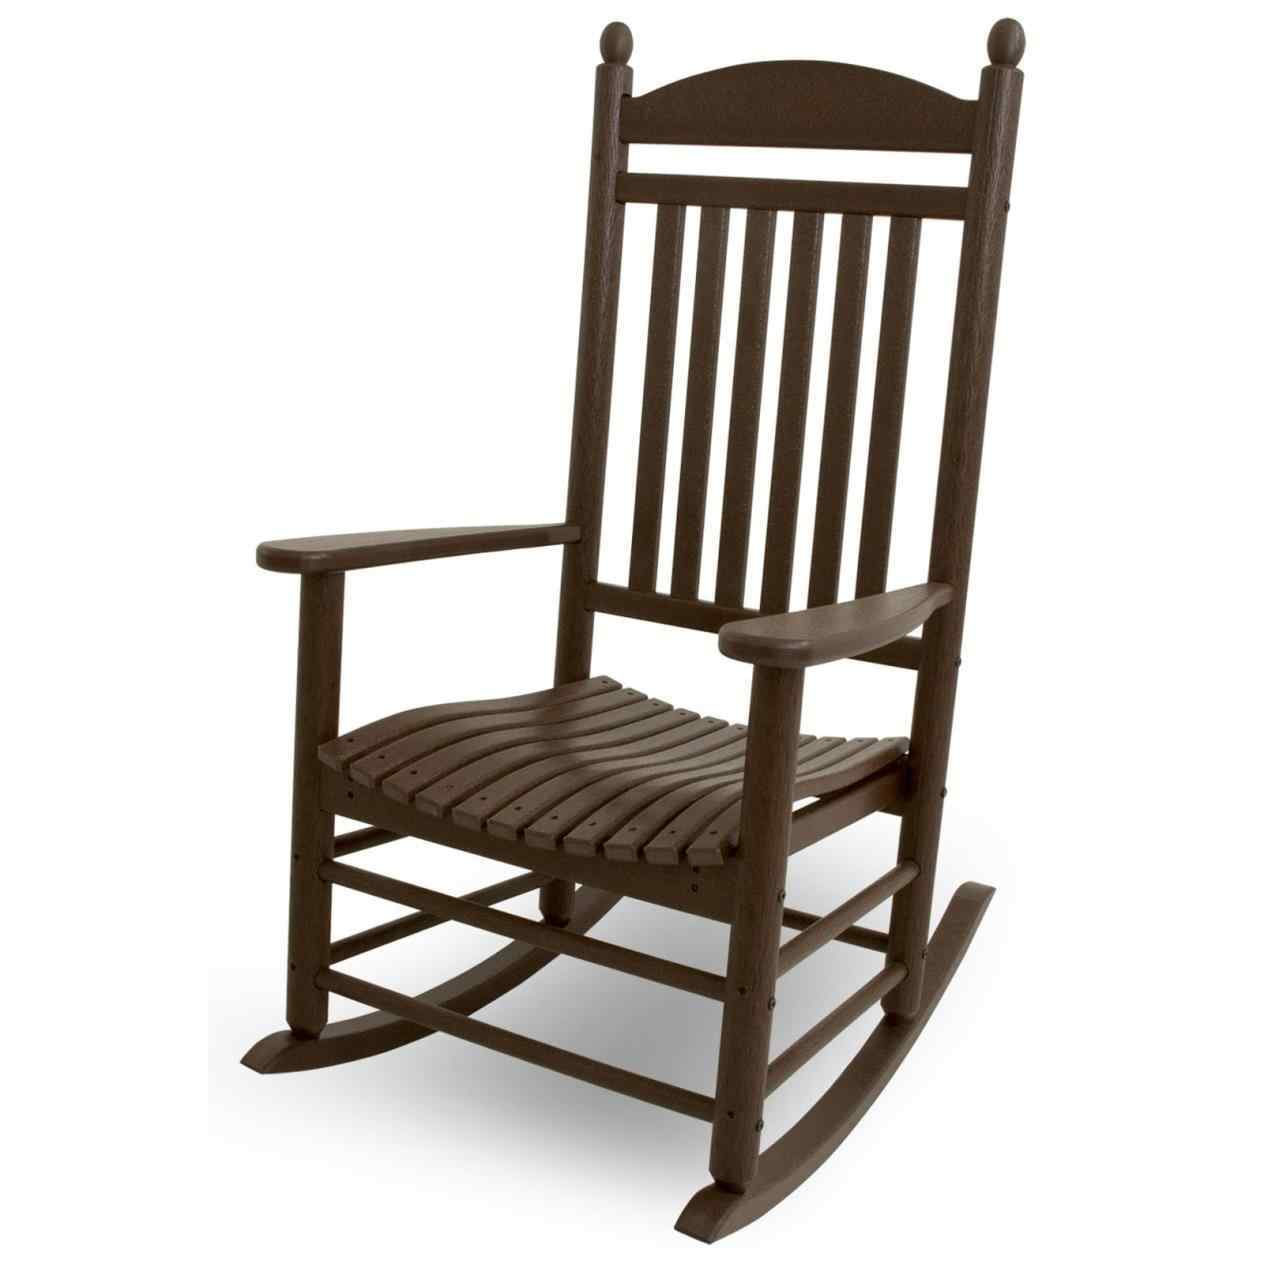 rocking chair silhouette. Beautiful Silhouette Rocking Chair Silhouette 1264x1264 Fascinating The Collection Of Fashioned  Line Pencil And In Pict To Rocking Chair Silhouette